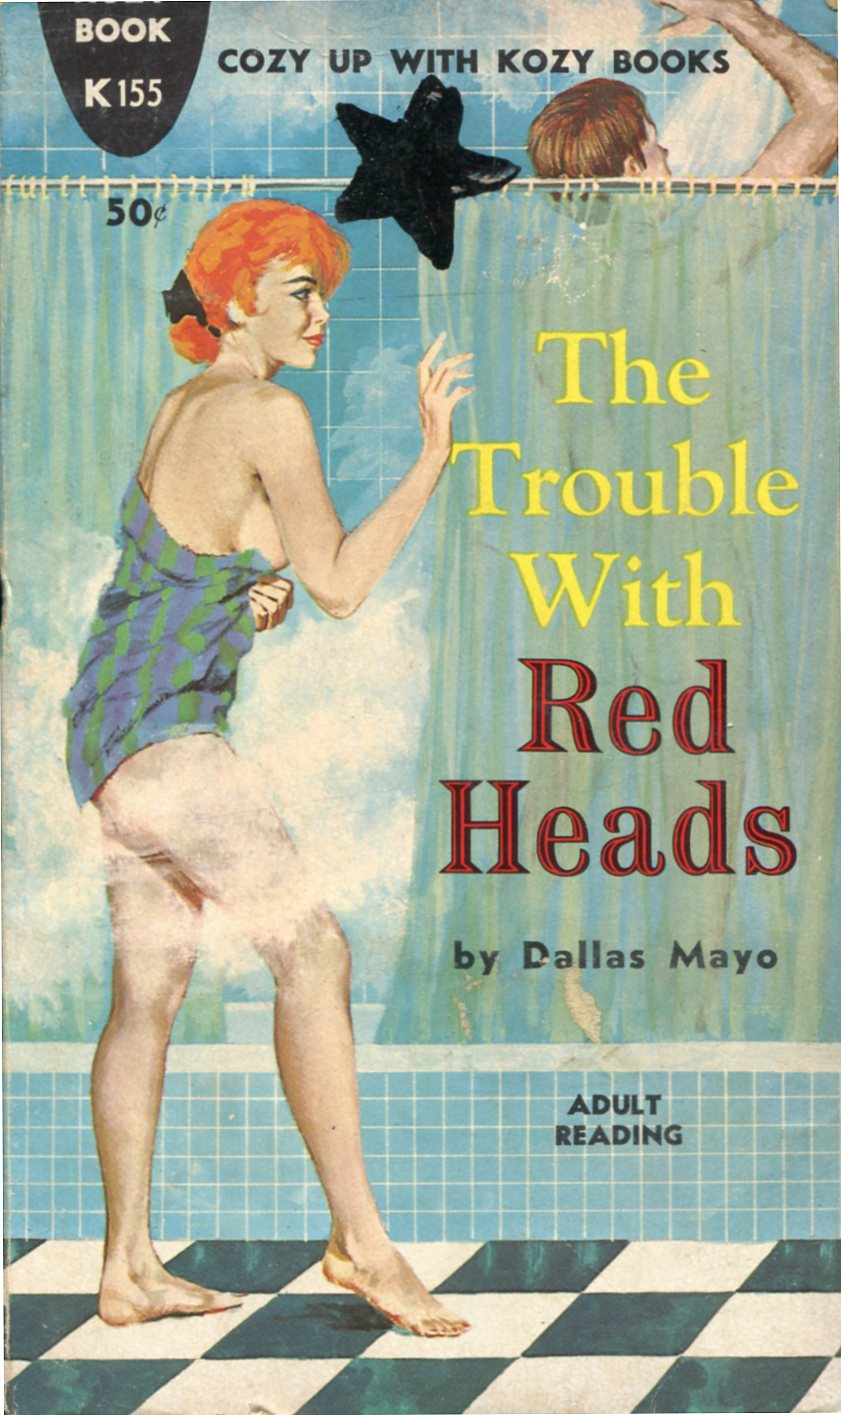 38552484-124_Dallas_Mayo_The_Trouble_with_Redheads_Kozy062